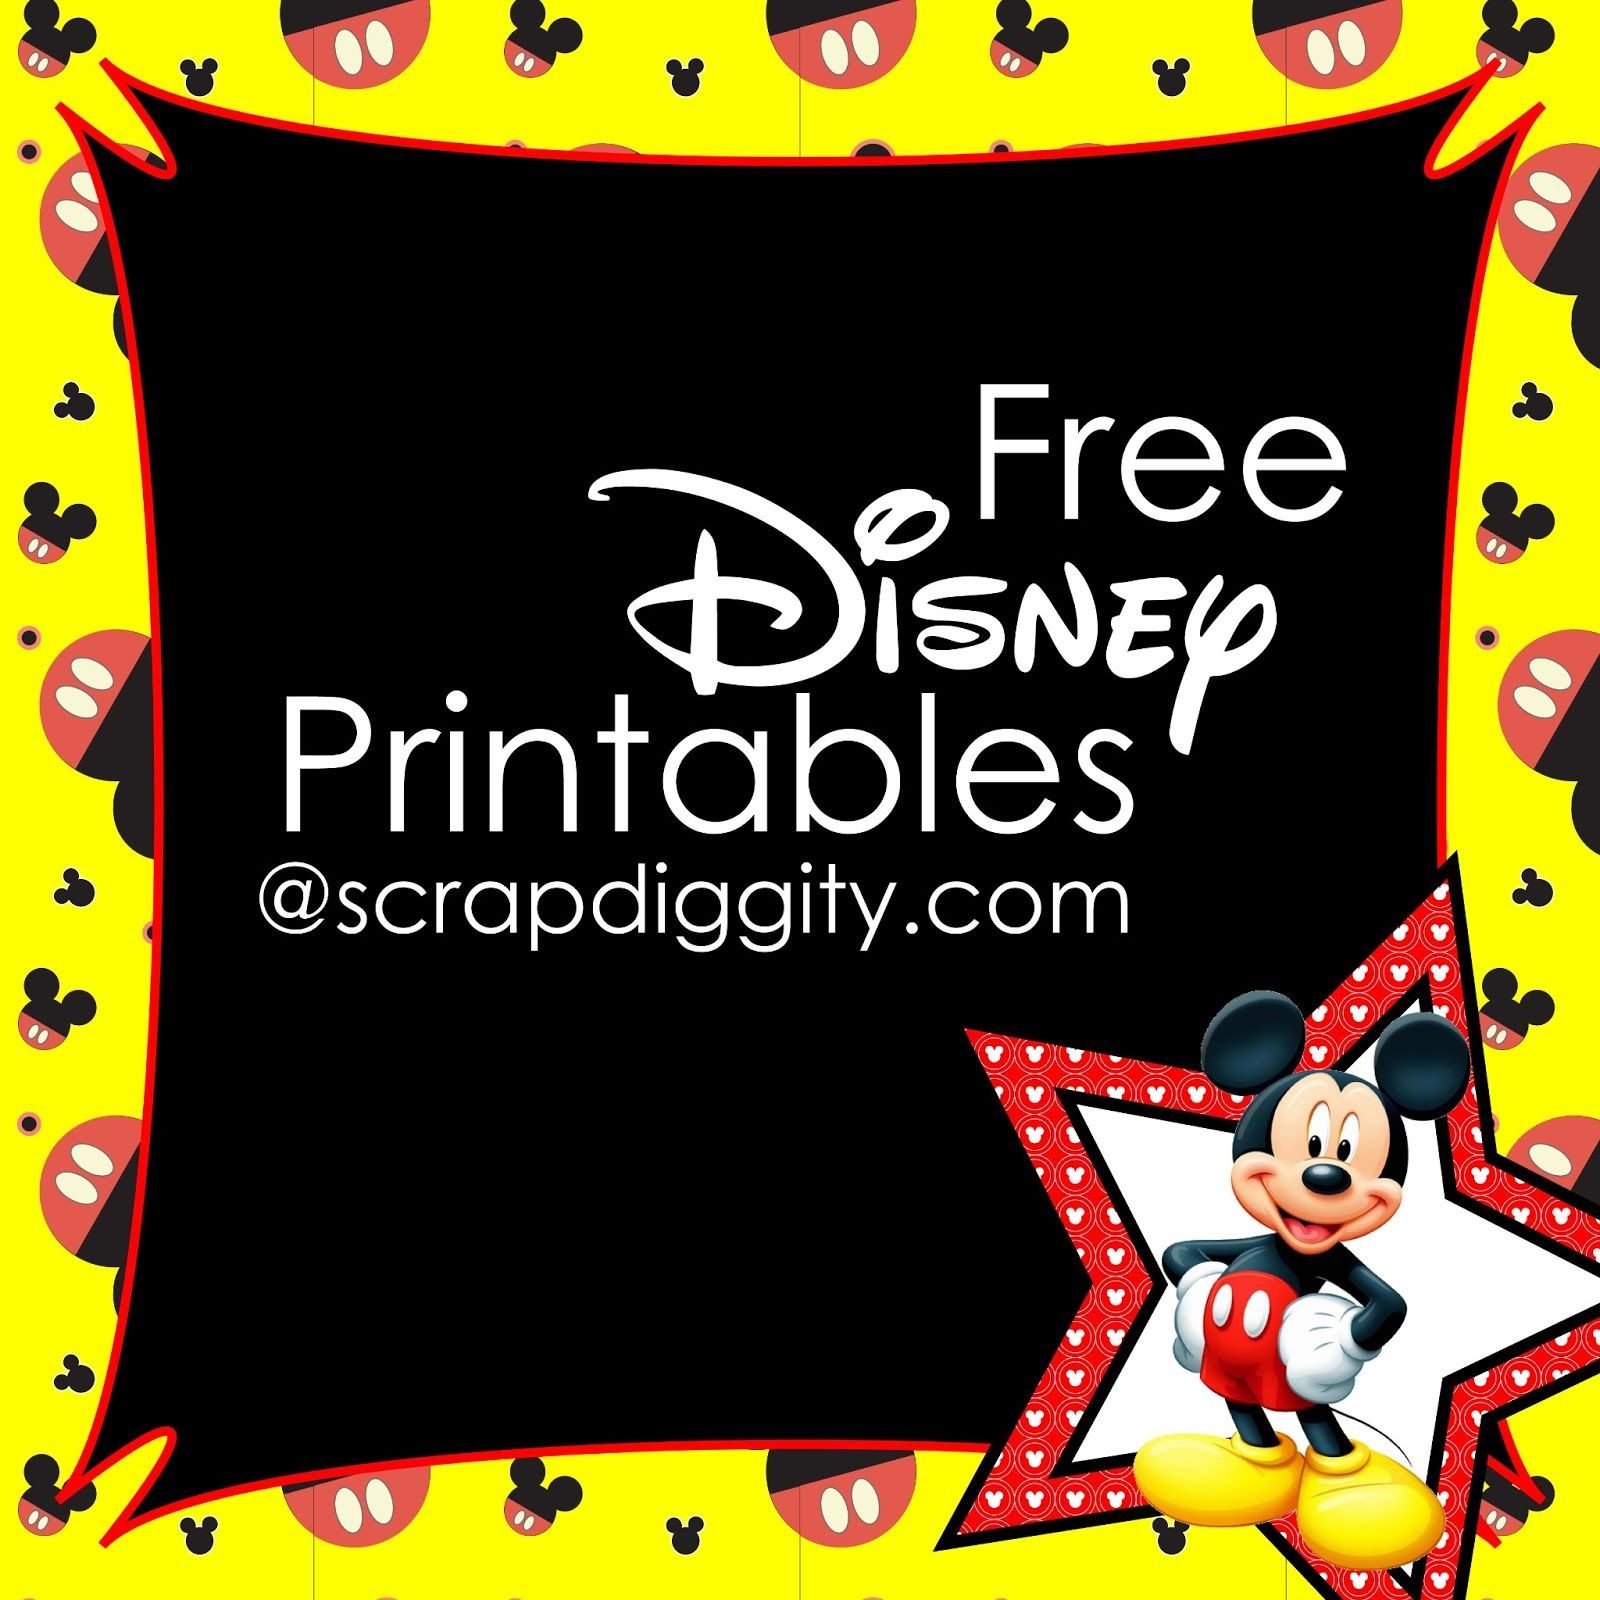 Scrapdiggity free disney printablesgreat for the classroom more